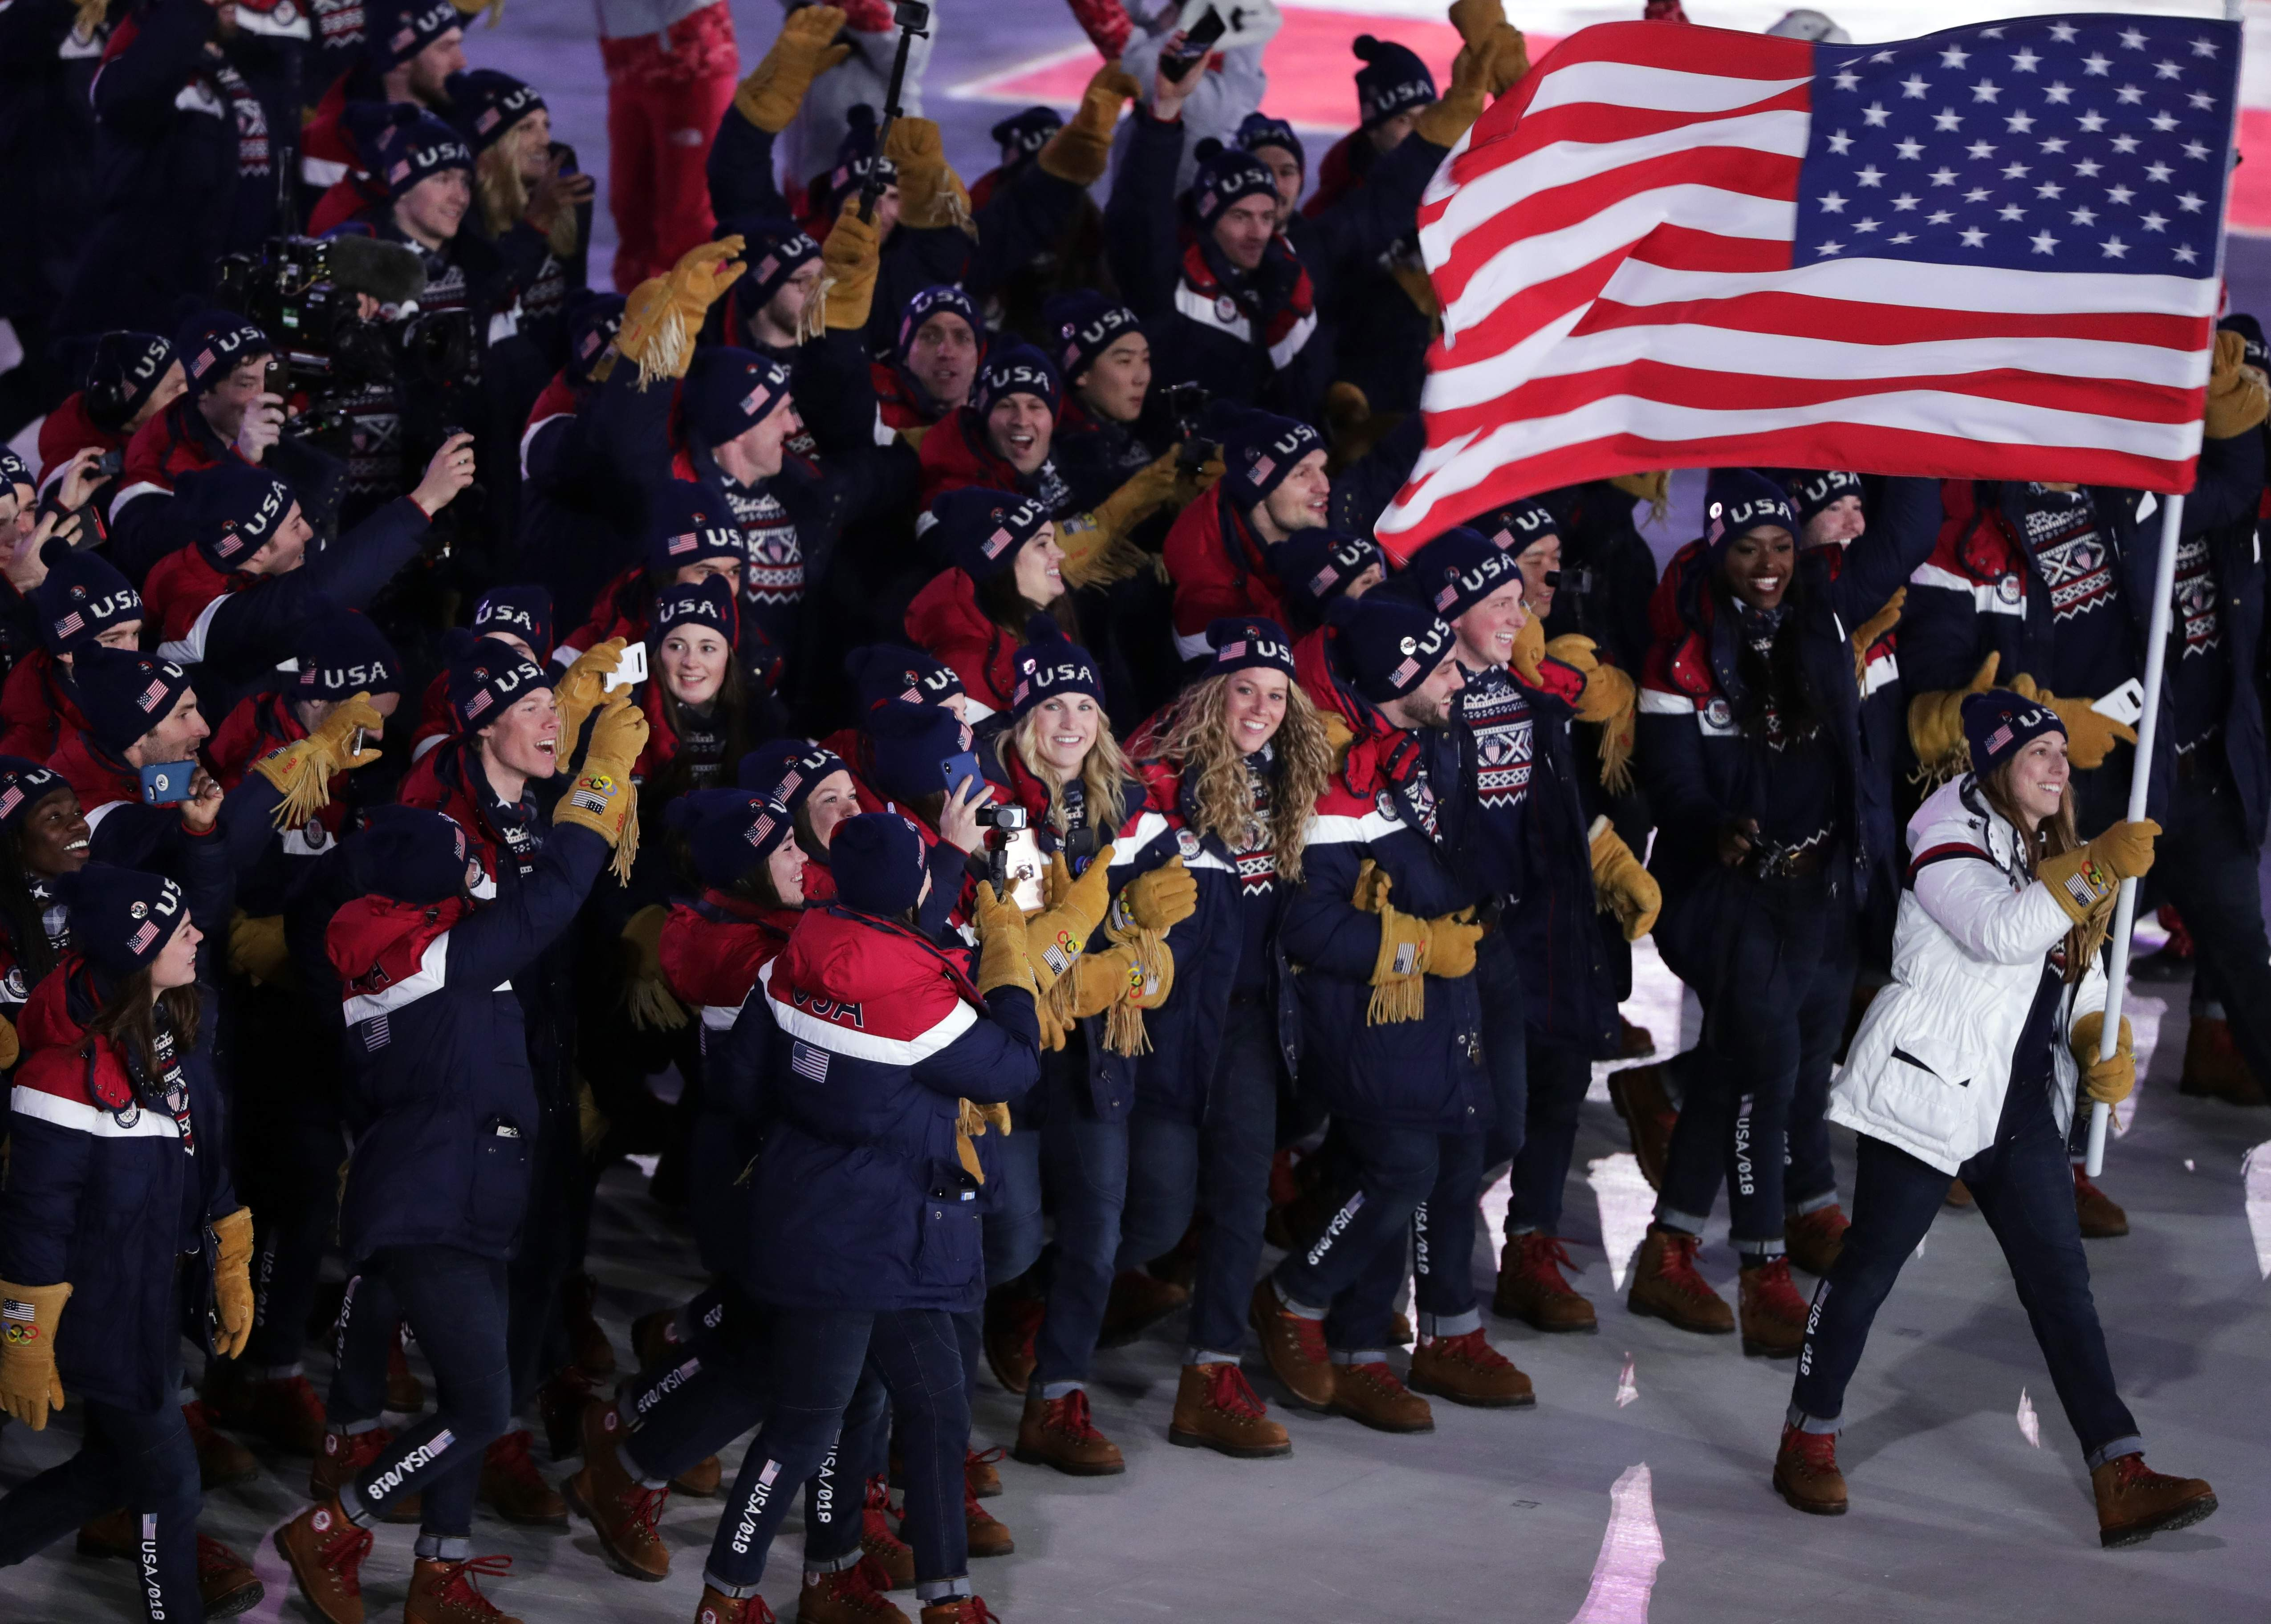 Erin Hamlin carries the flag of the United States during the opening ceremony of the 2018 Winter Olympics in Pyeongchang, South Korea, Friday, Feb. 9, 2018. (AP Photo/Julie Jacobson)